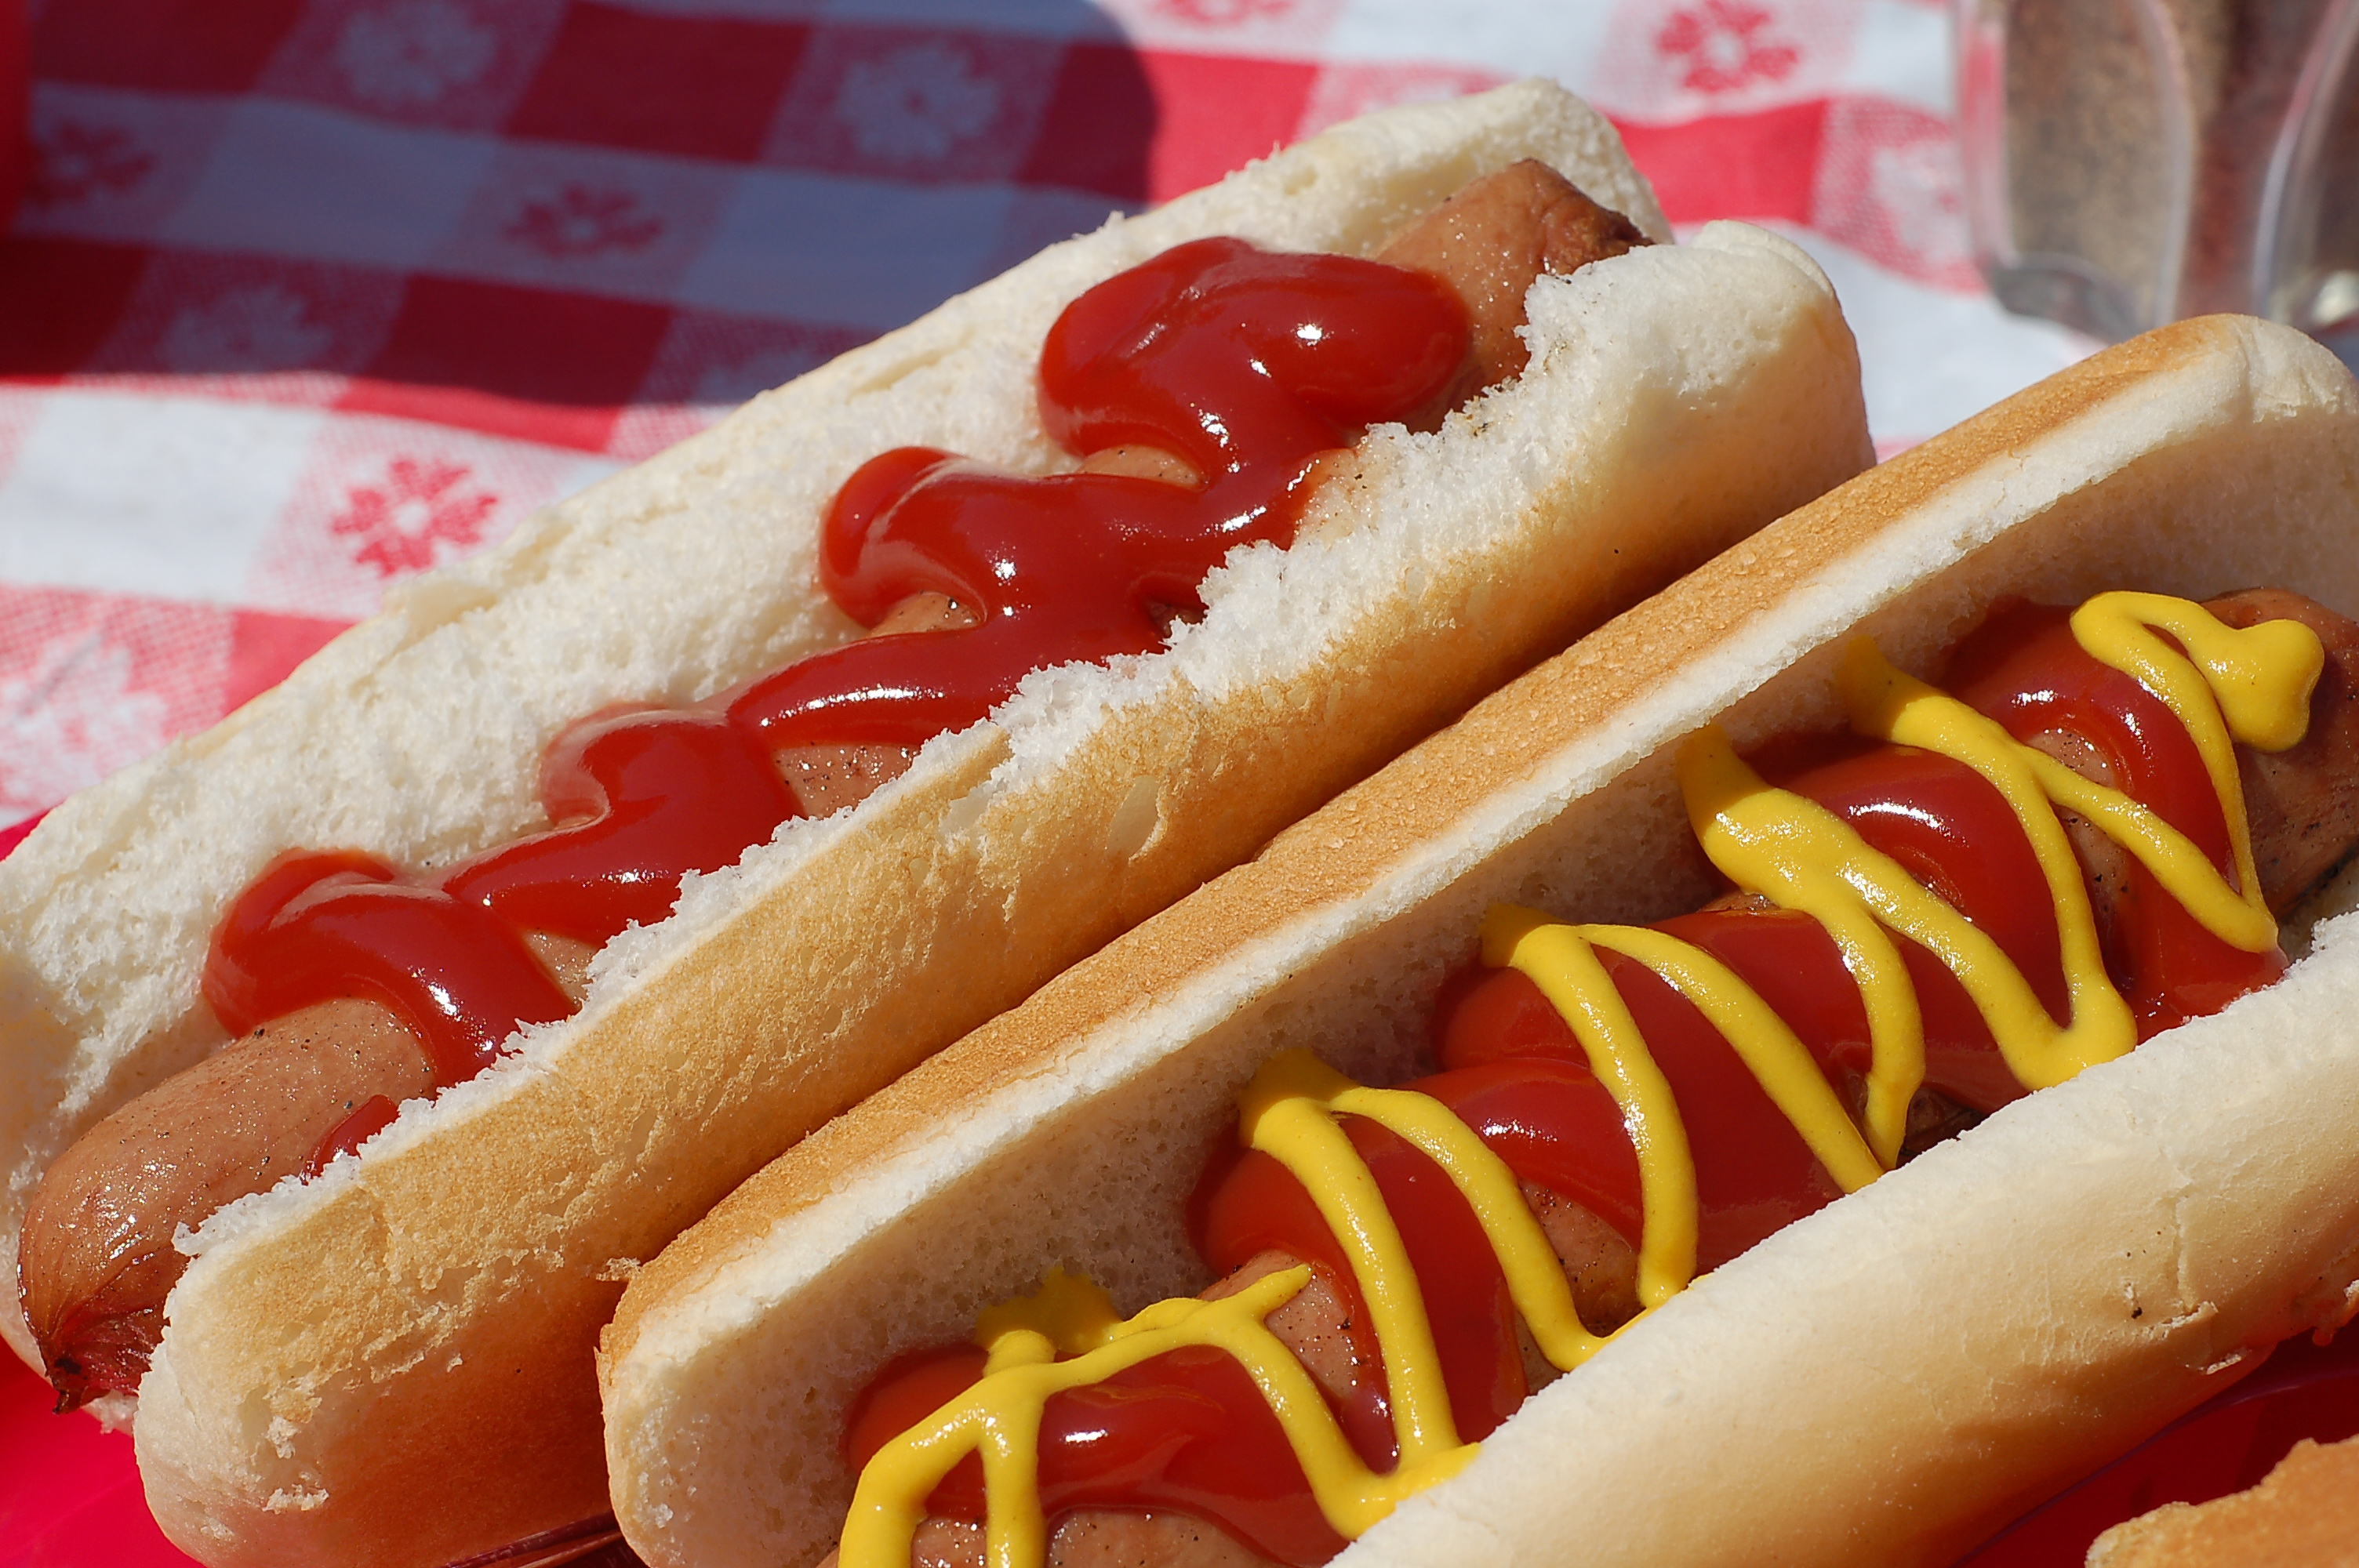 Is Hot Dog In The Same Family As Sausage